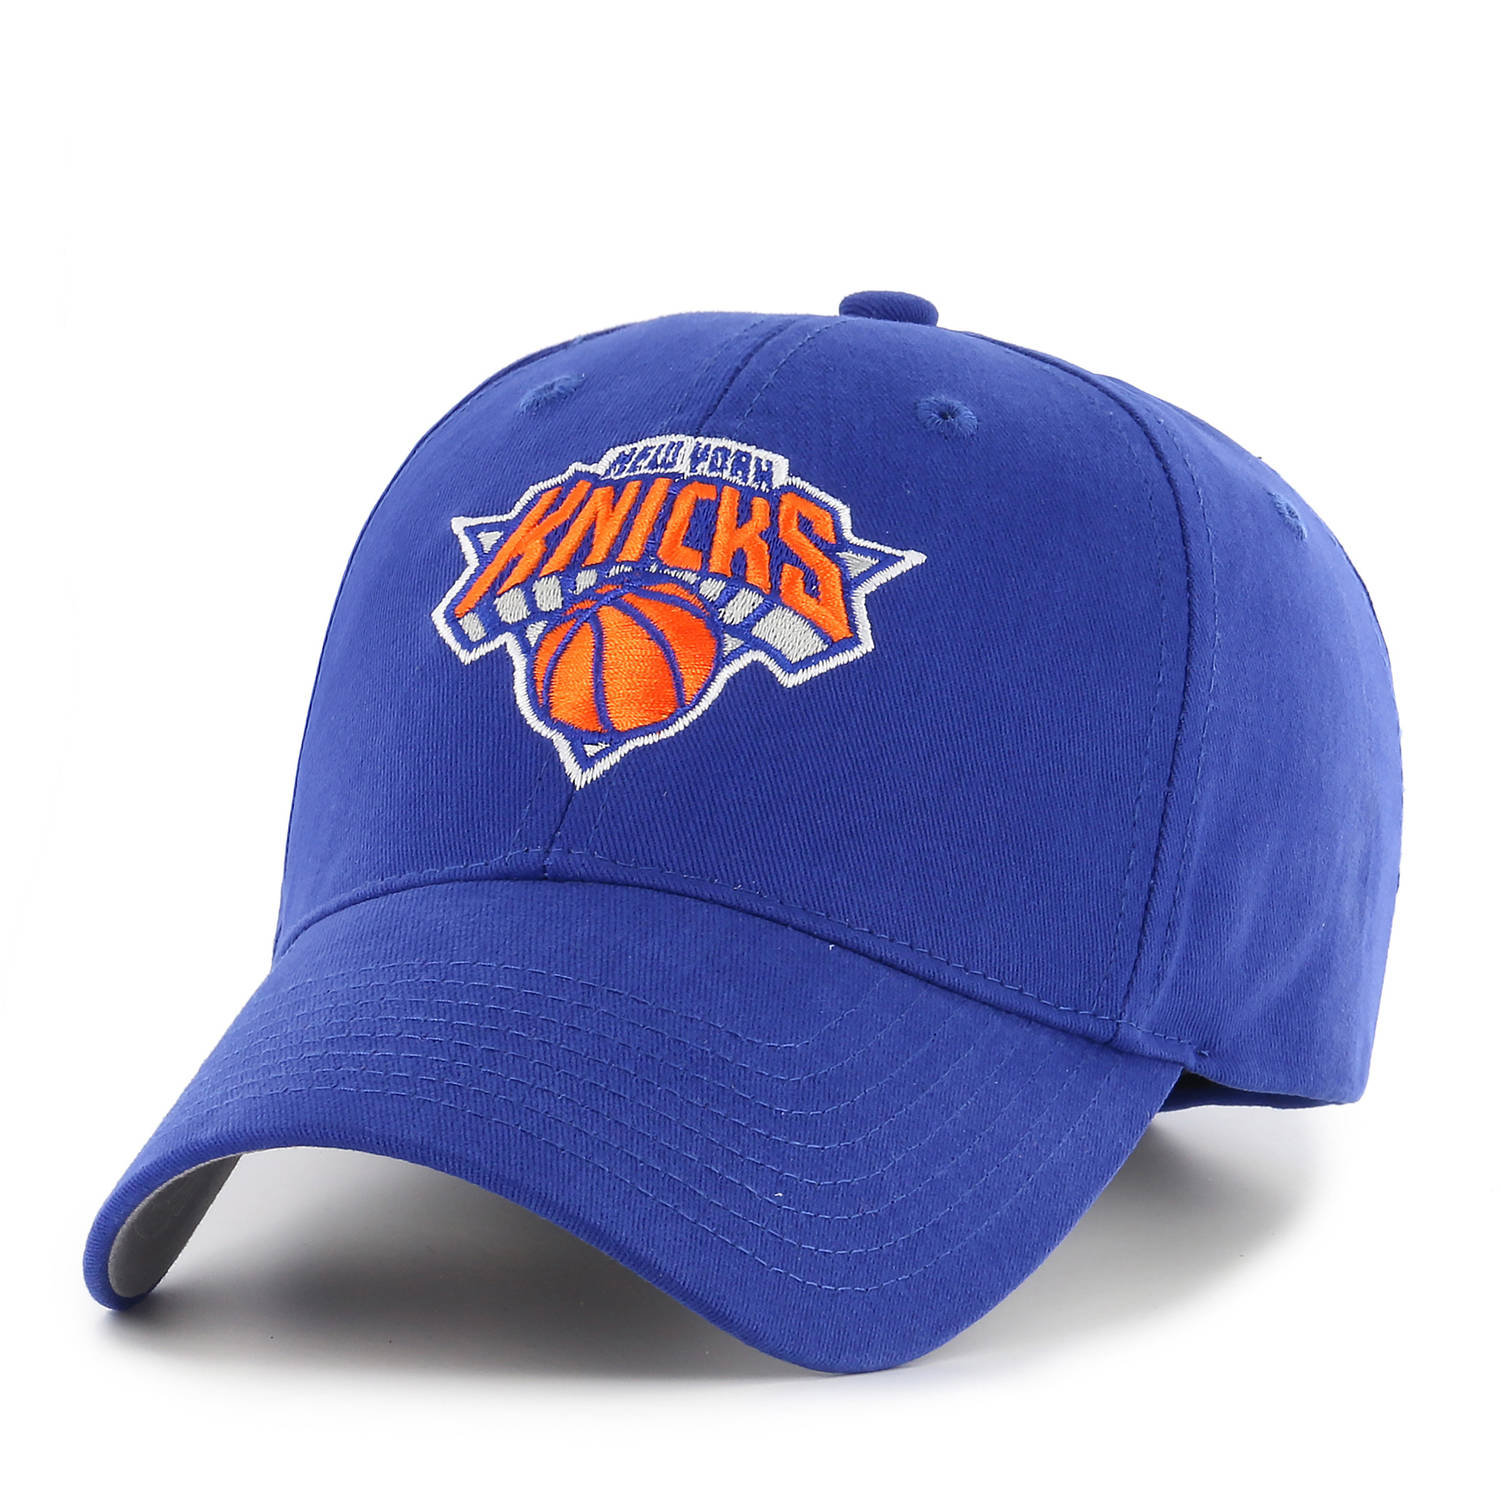 NBA New York Knicks Basic Cap/Hat - Fan Favorite